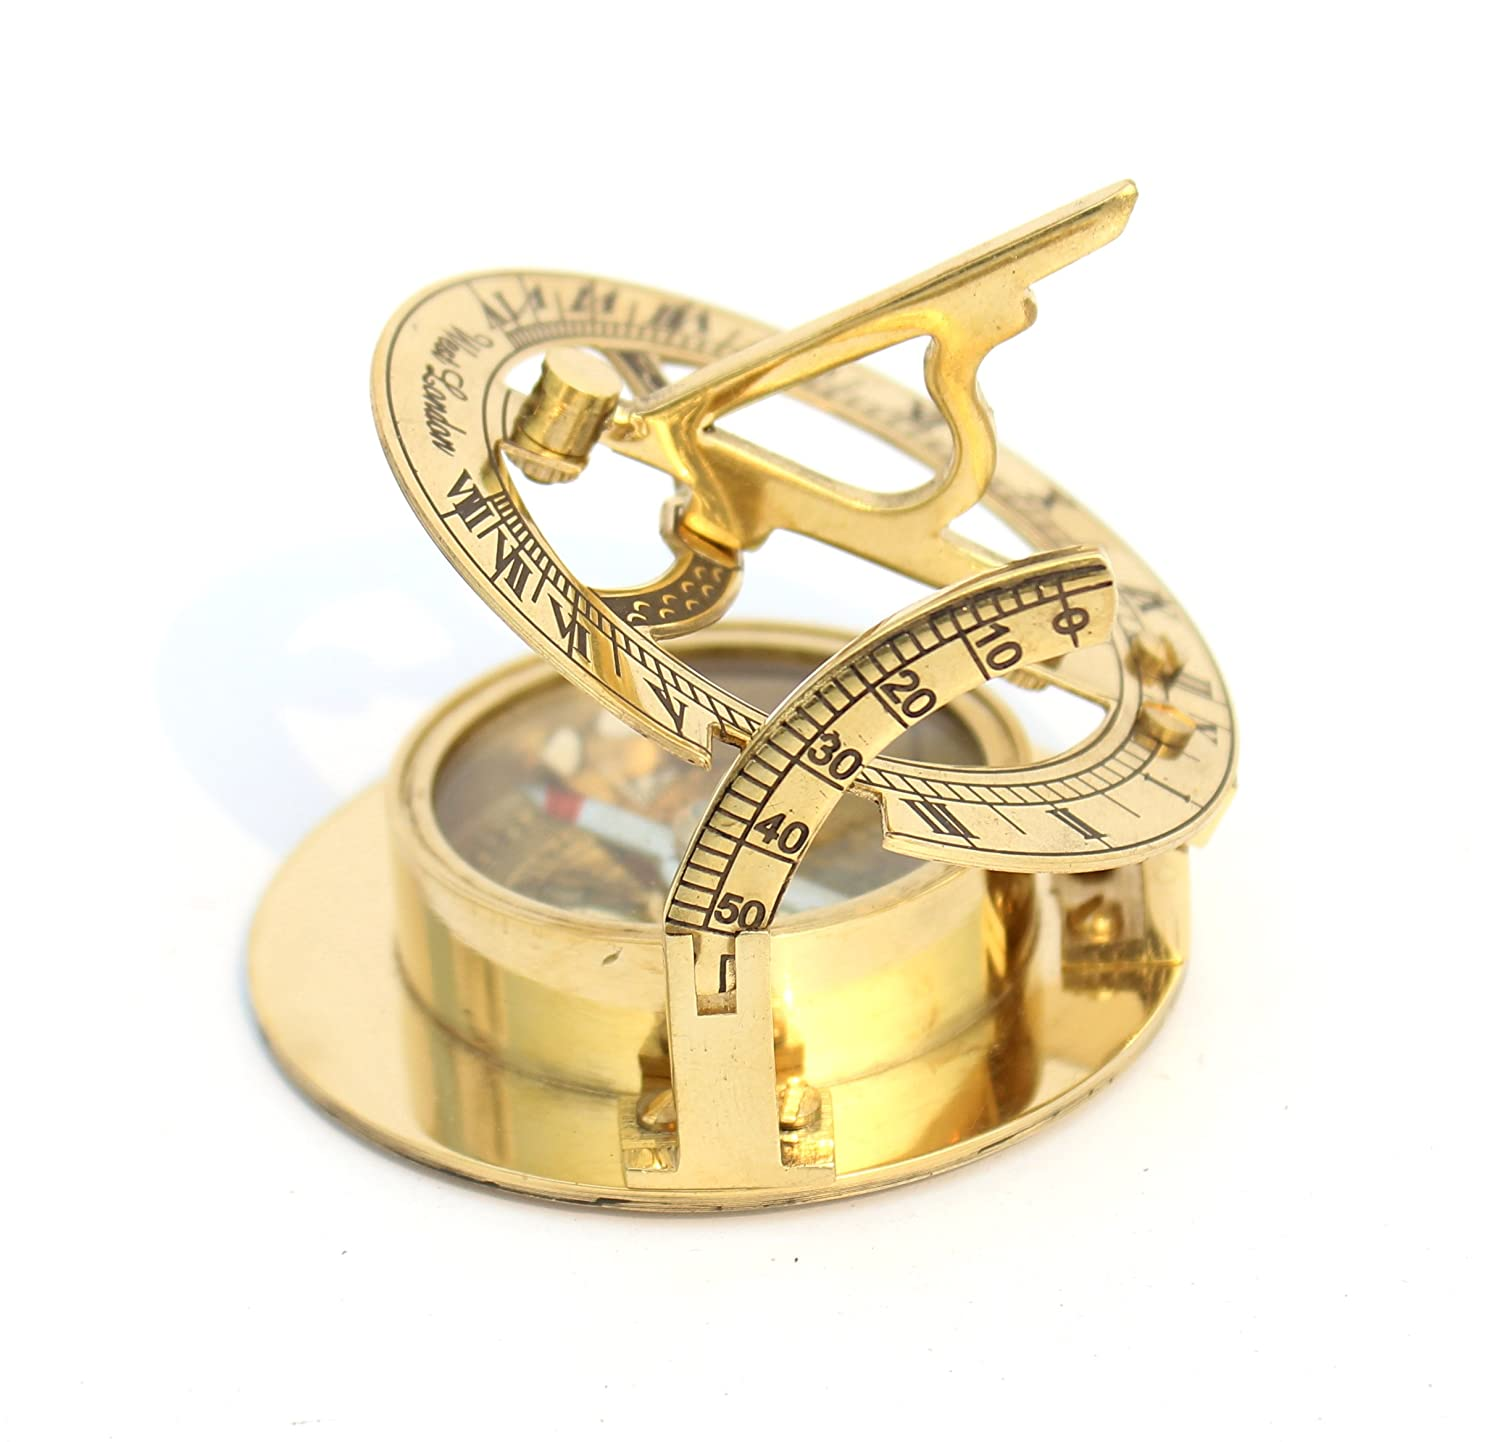 Amazing Design Sundial Compass Round Style Shiny Brass Finish Compass by Collectibles Buy ZCO304